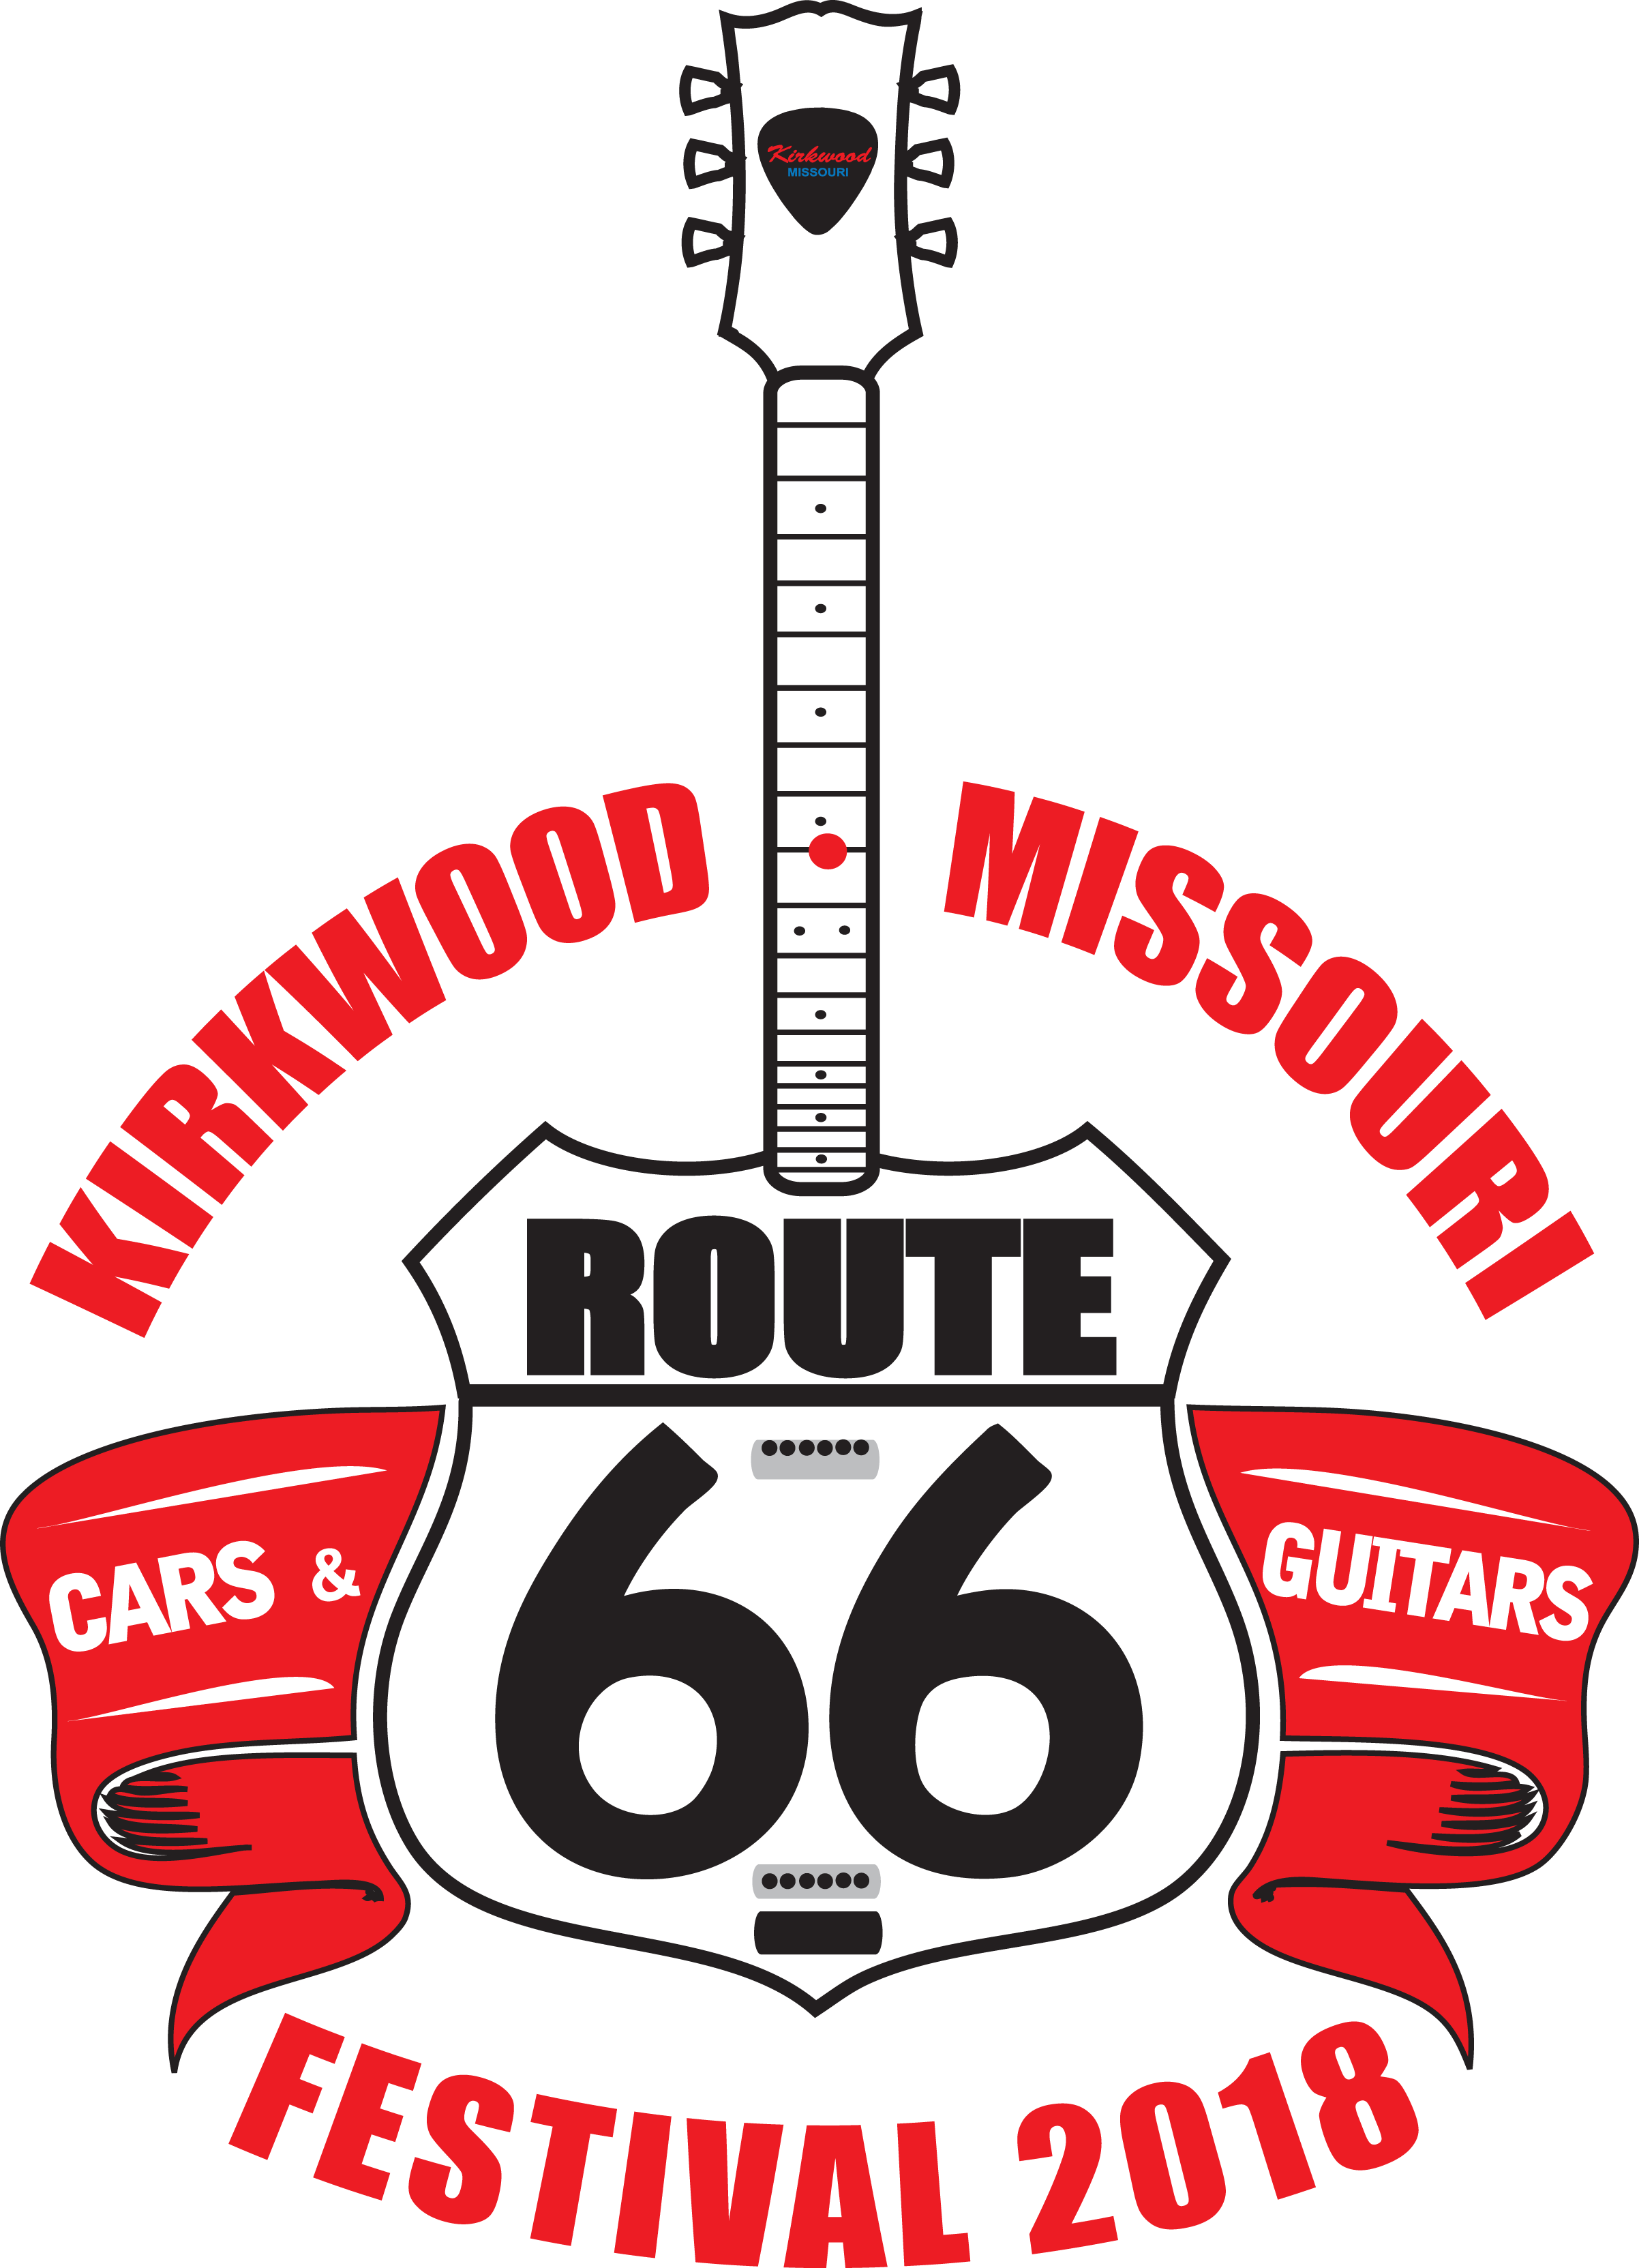 clipart freeuse library 9 11 clipart logo. Route cars and guitars